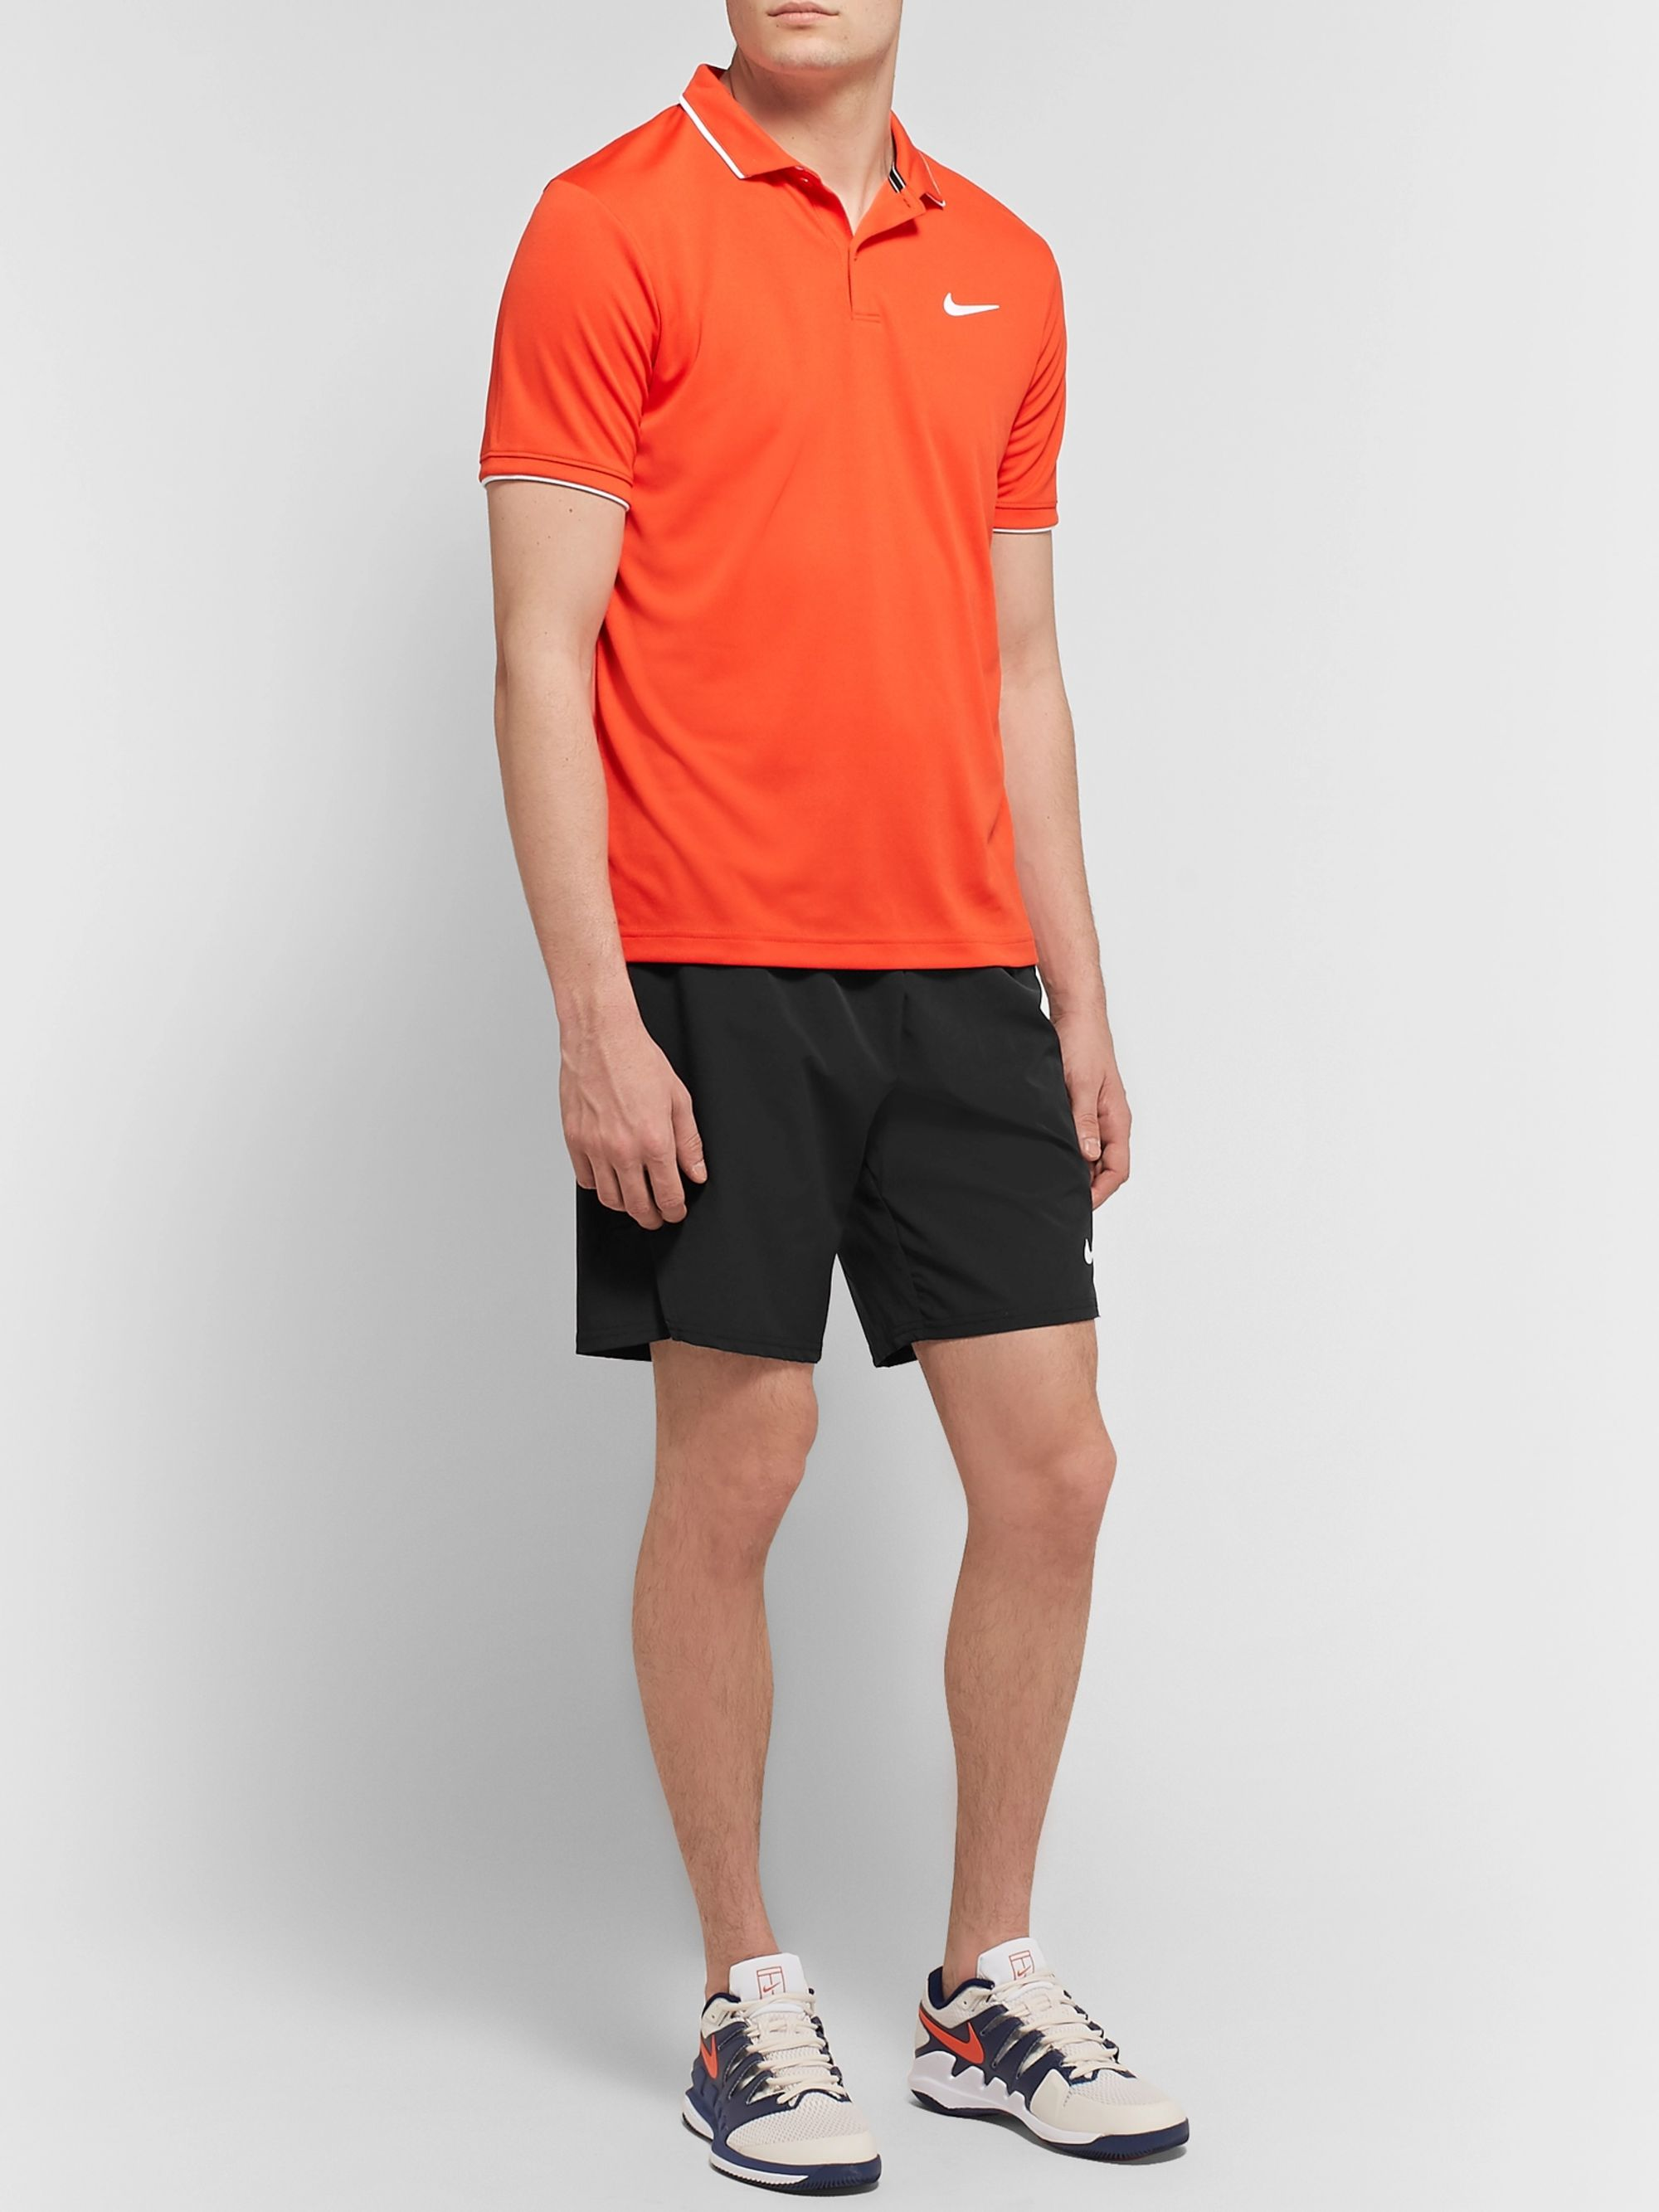 Nike Tennis NikeCourt Flex Ace Dri-FIT Tennis Shorts